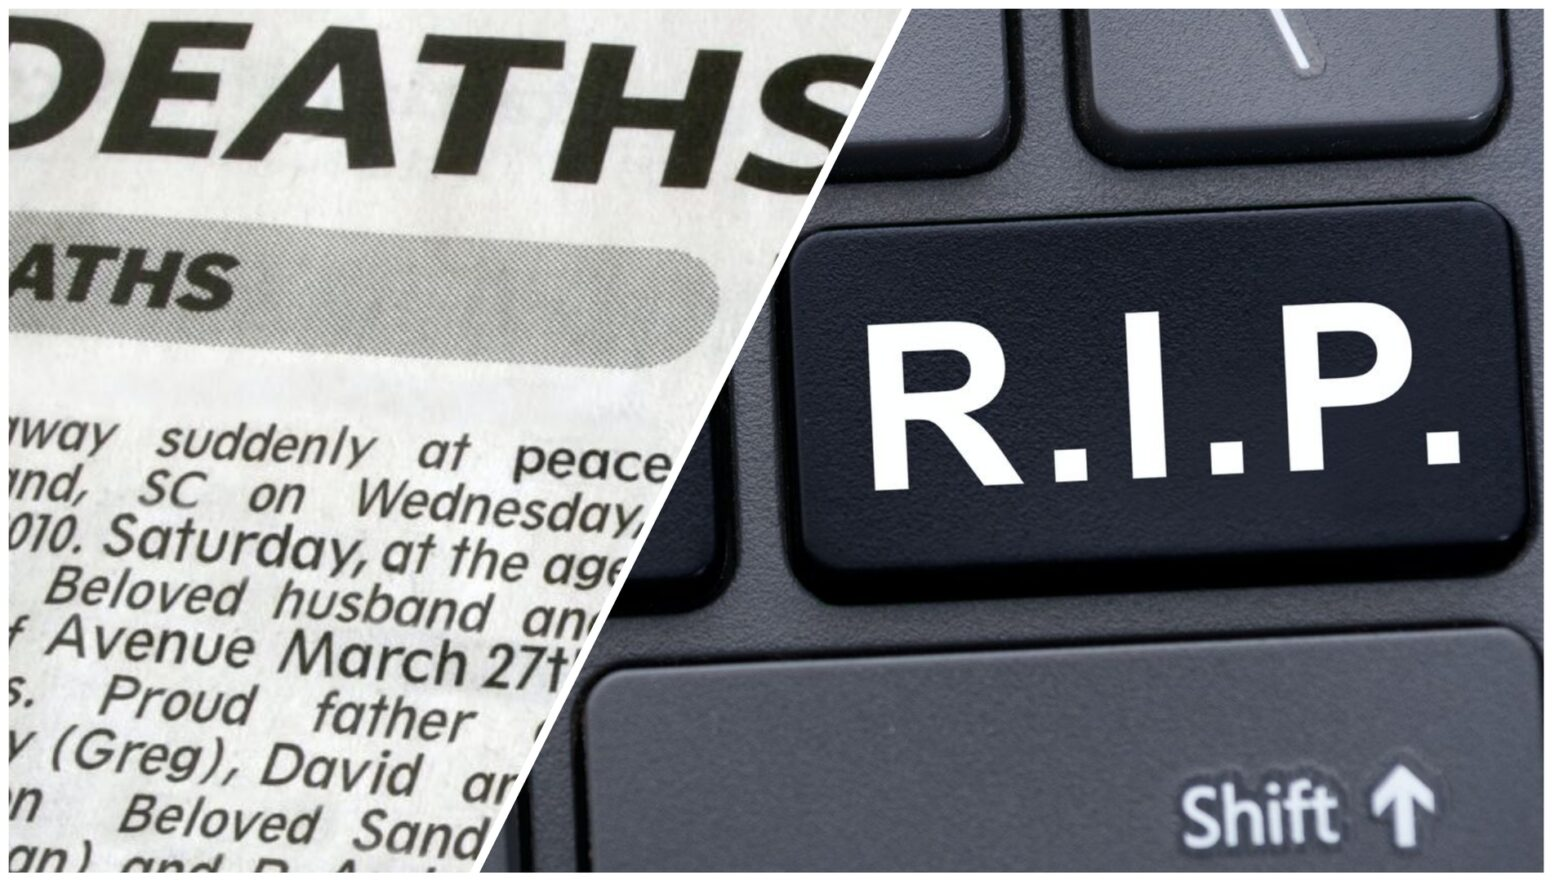 5 Reasons Online Memorials are More Meaningful than Obituaries